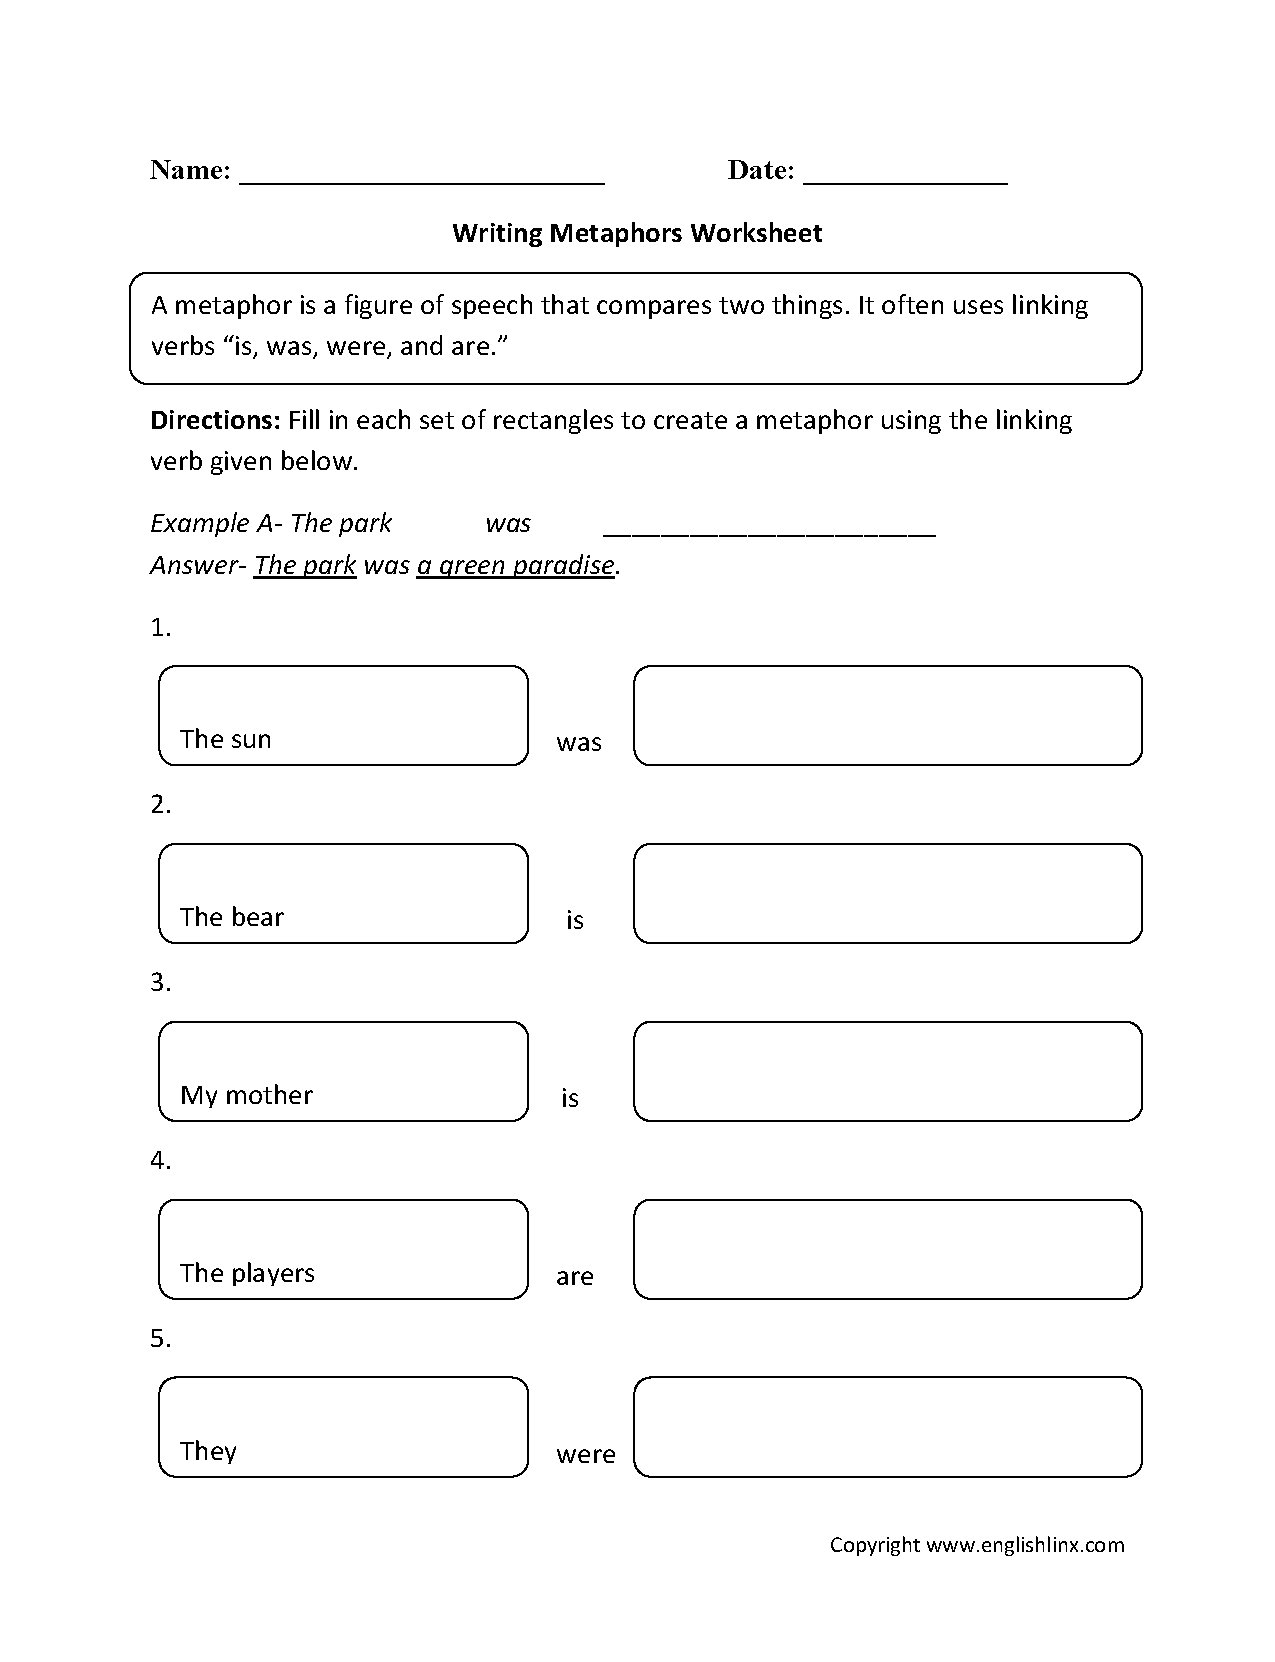 Worksheets 8th Grade Writing Worksheets writing metaphors worksheet part 1 beginner english language arts beginner